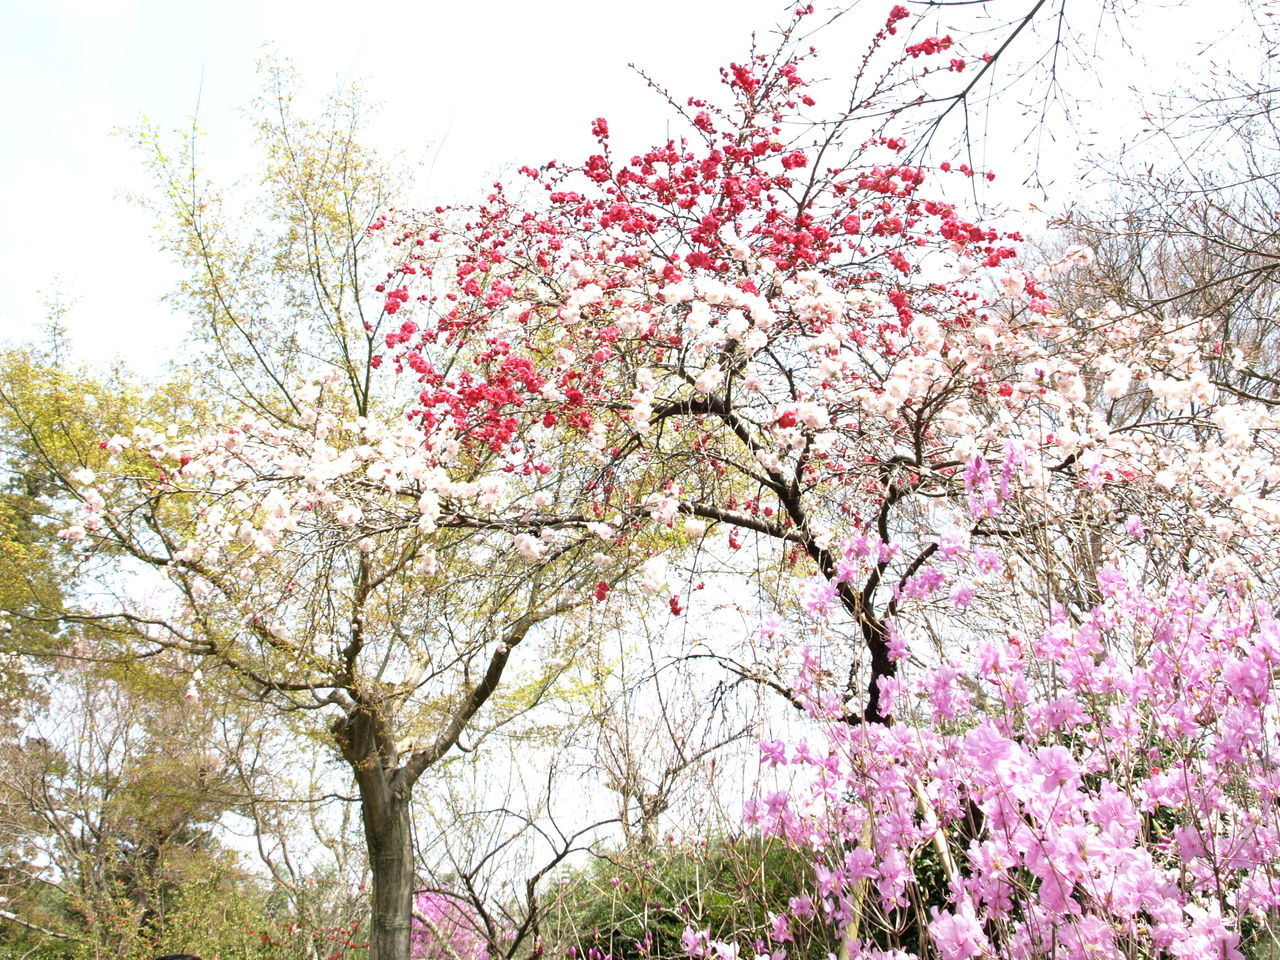 flower, tree, blossom, beauty in nature, pink color, branch, fragility, springtime, nature, freshness, growth, low angle view, day, no people, outdoors, close-up, sky, flower head